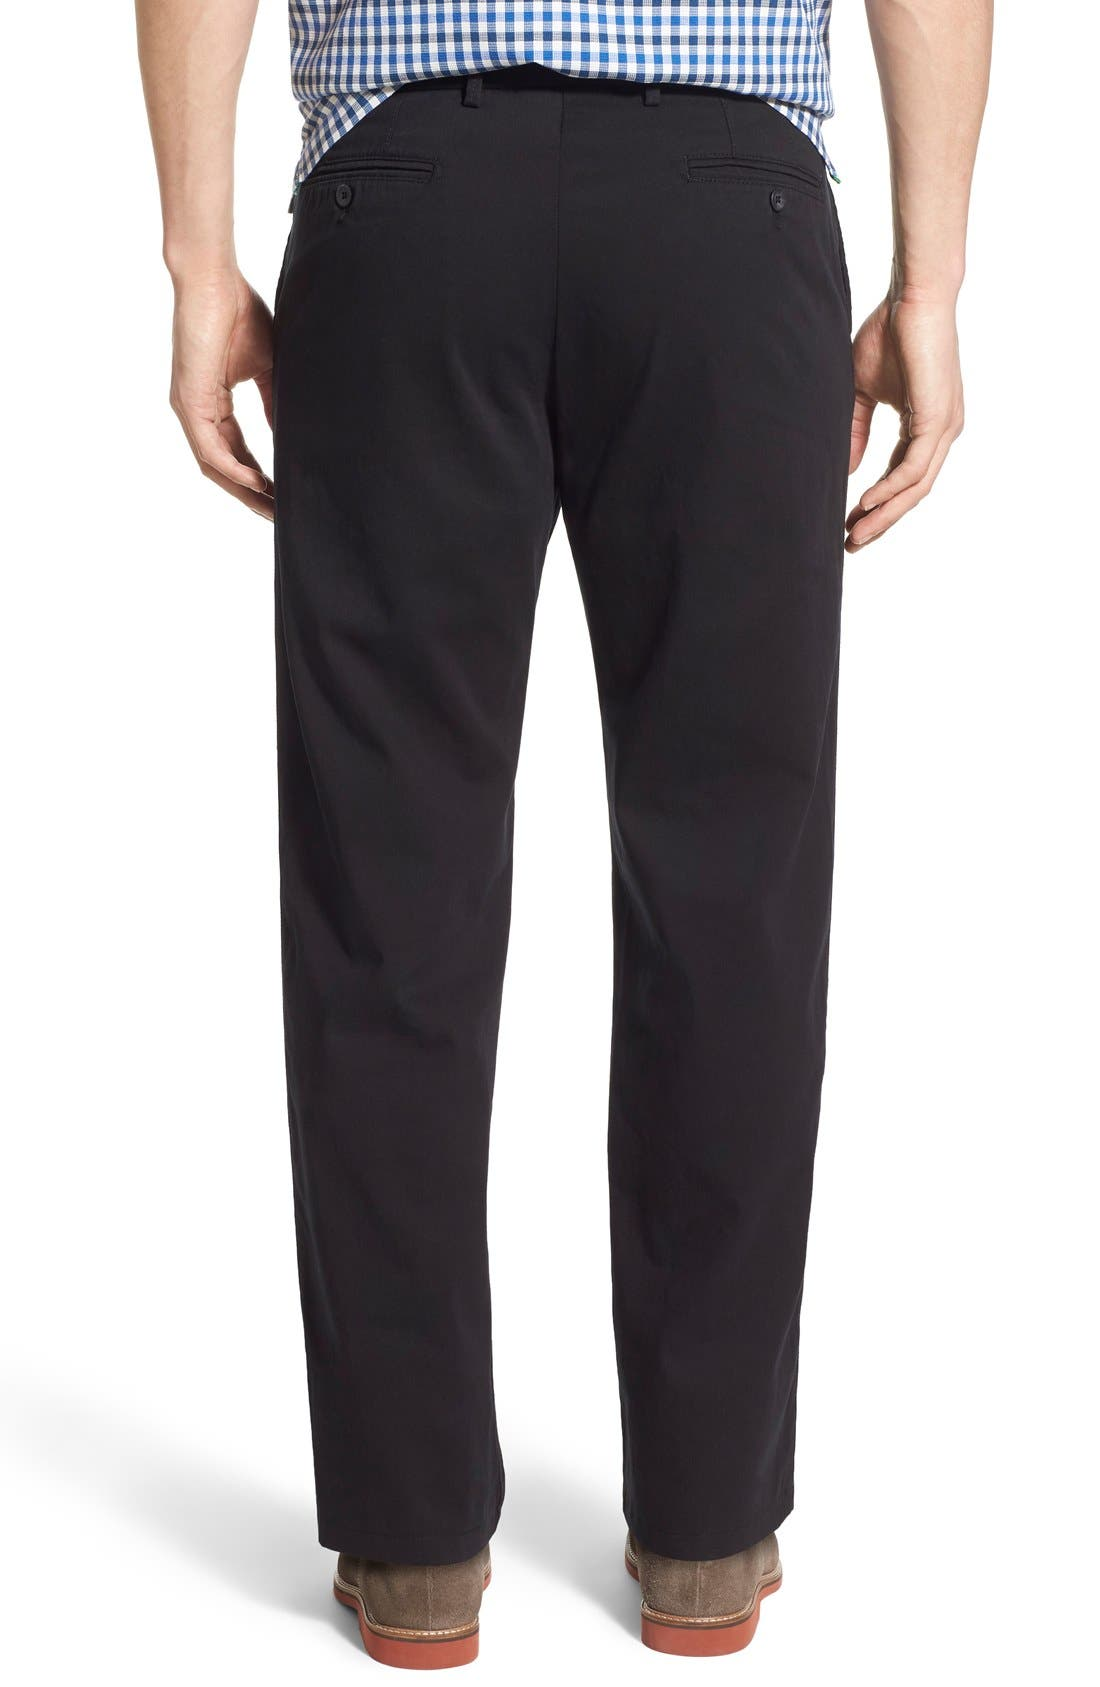 Mansfield Pima Cotton Pant,                             Alternate thumbnail 4, color,                             001